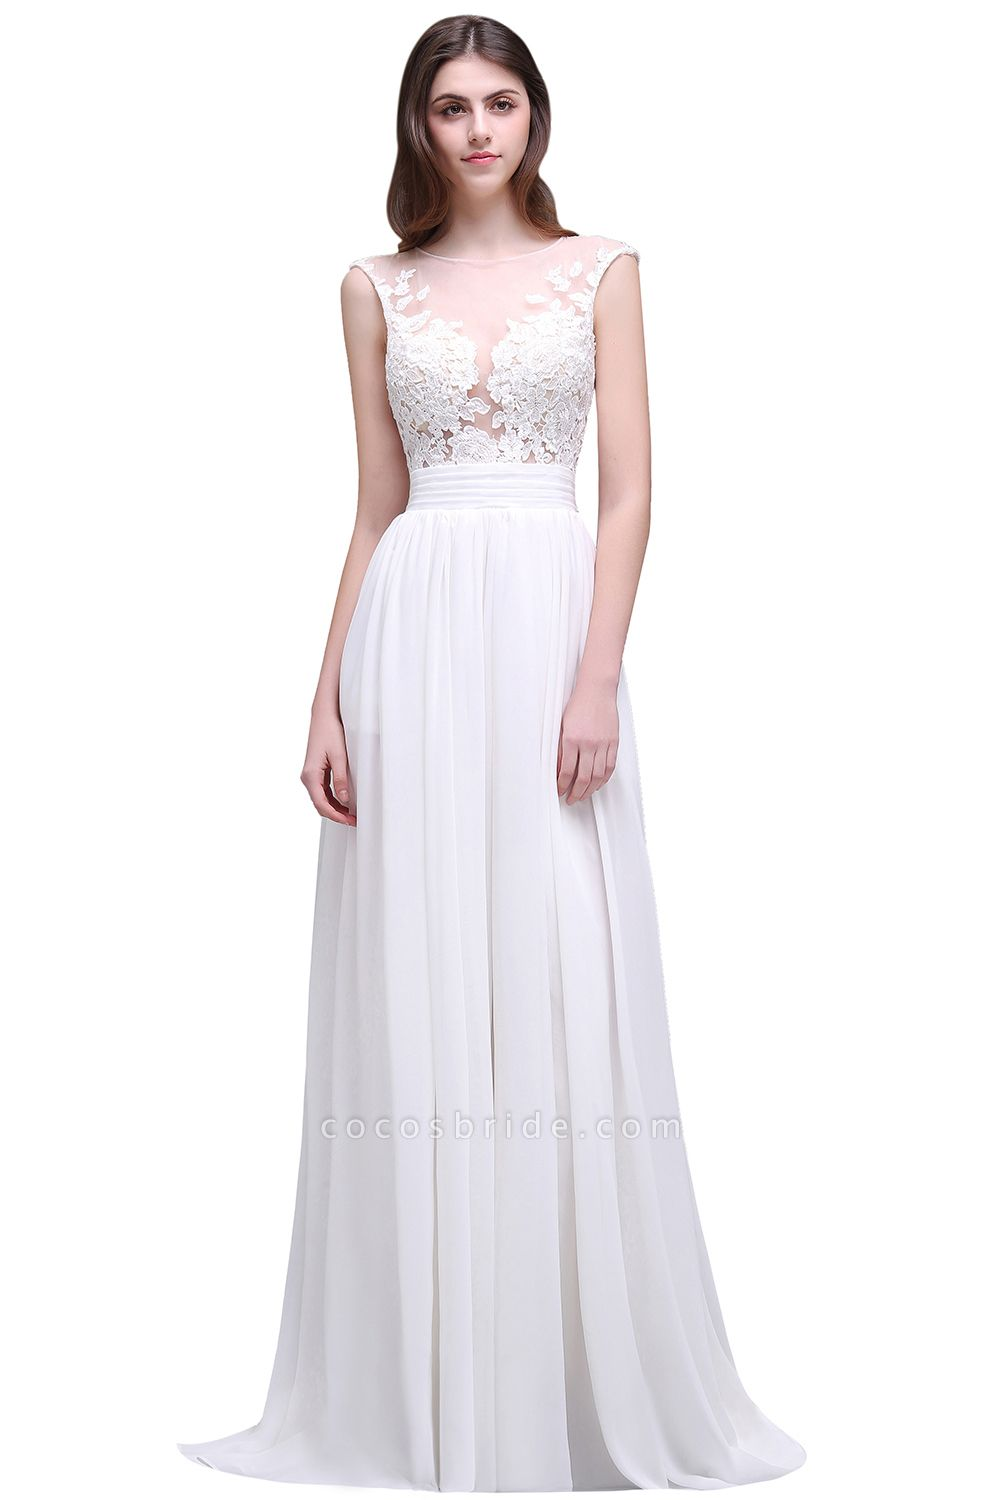 Chiffon Lace Appliques Sleeveless Boho Wedding Dress